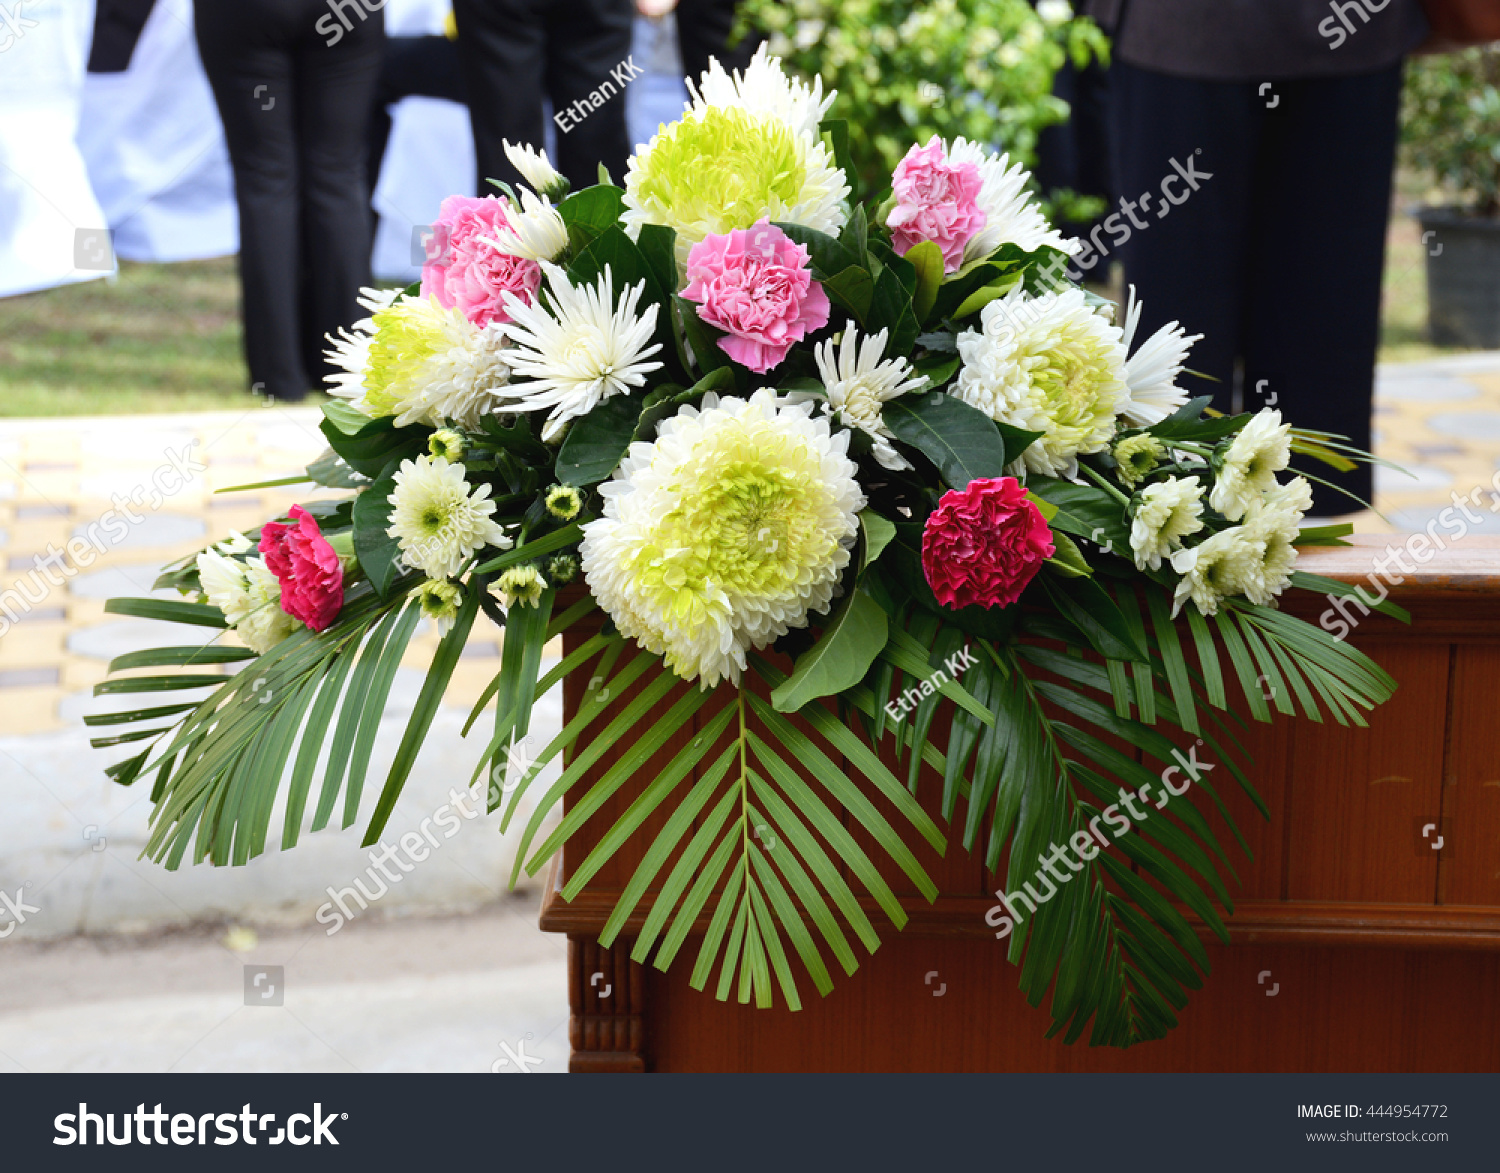 Diversity flower vase setting on table stock photo 444954772 diversity of flower in the vase setting on table at the event reviewsmspy